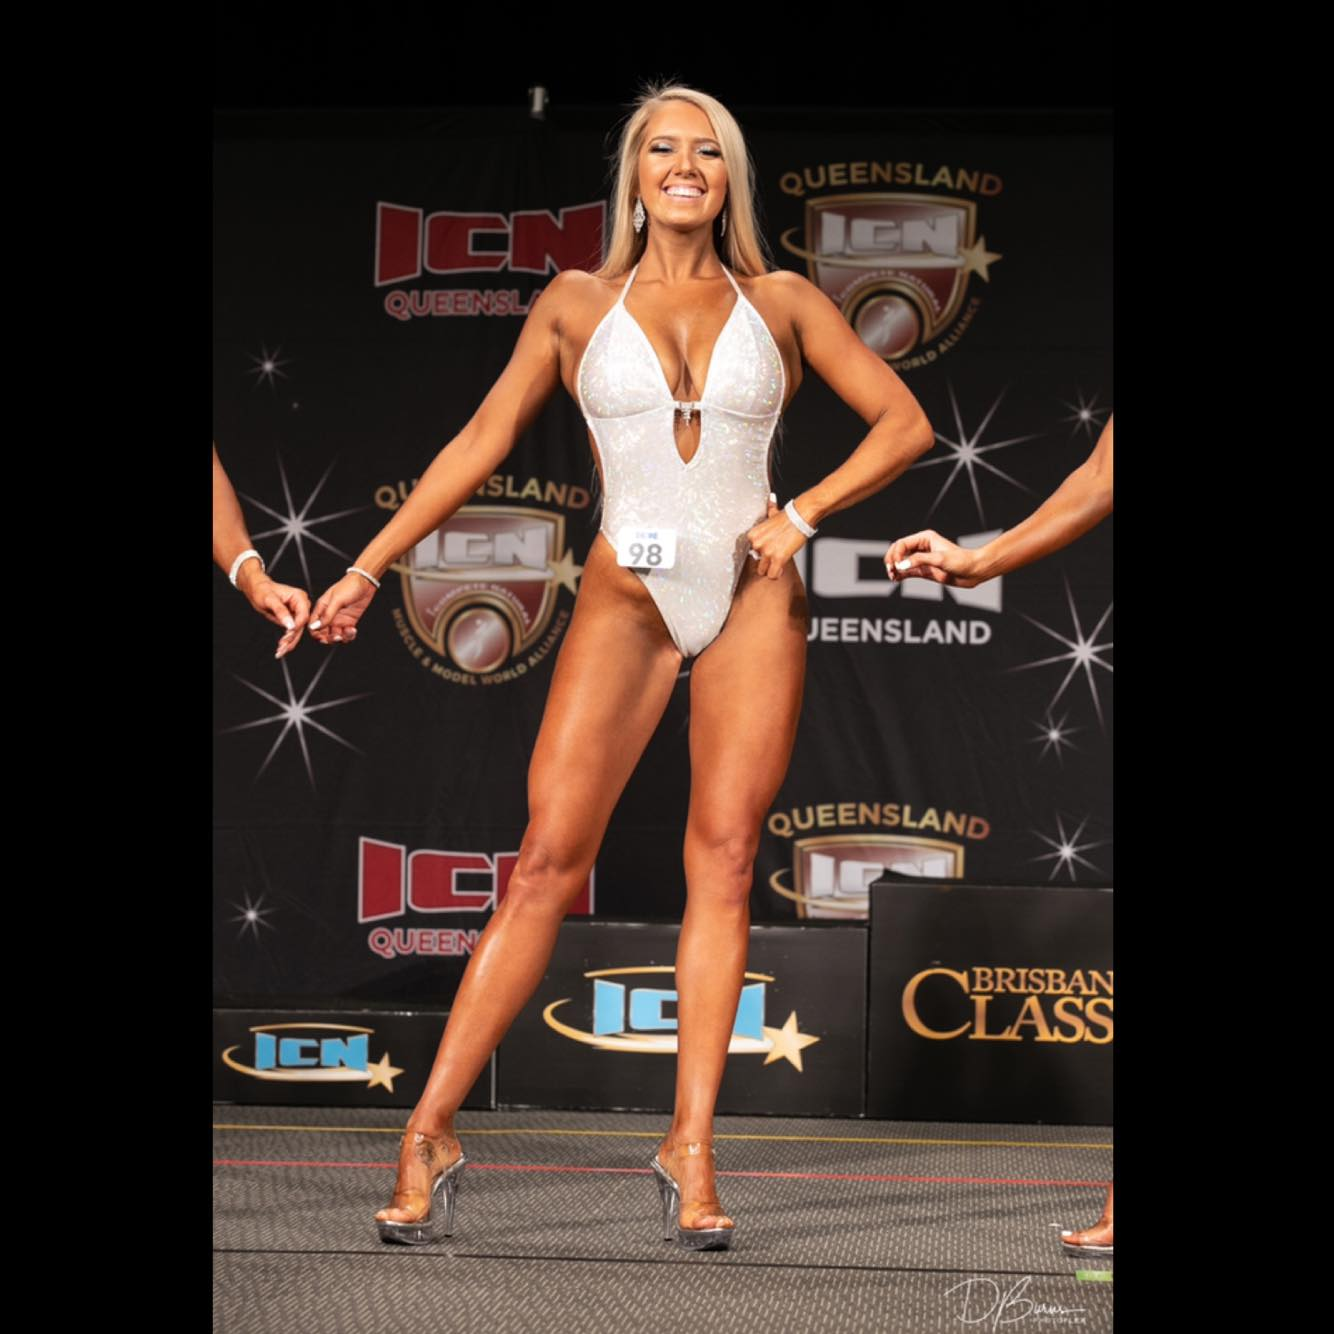 contest preparation healthy eating reverse diet show preparation body building.jpg